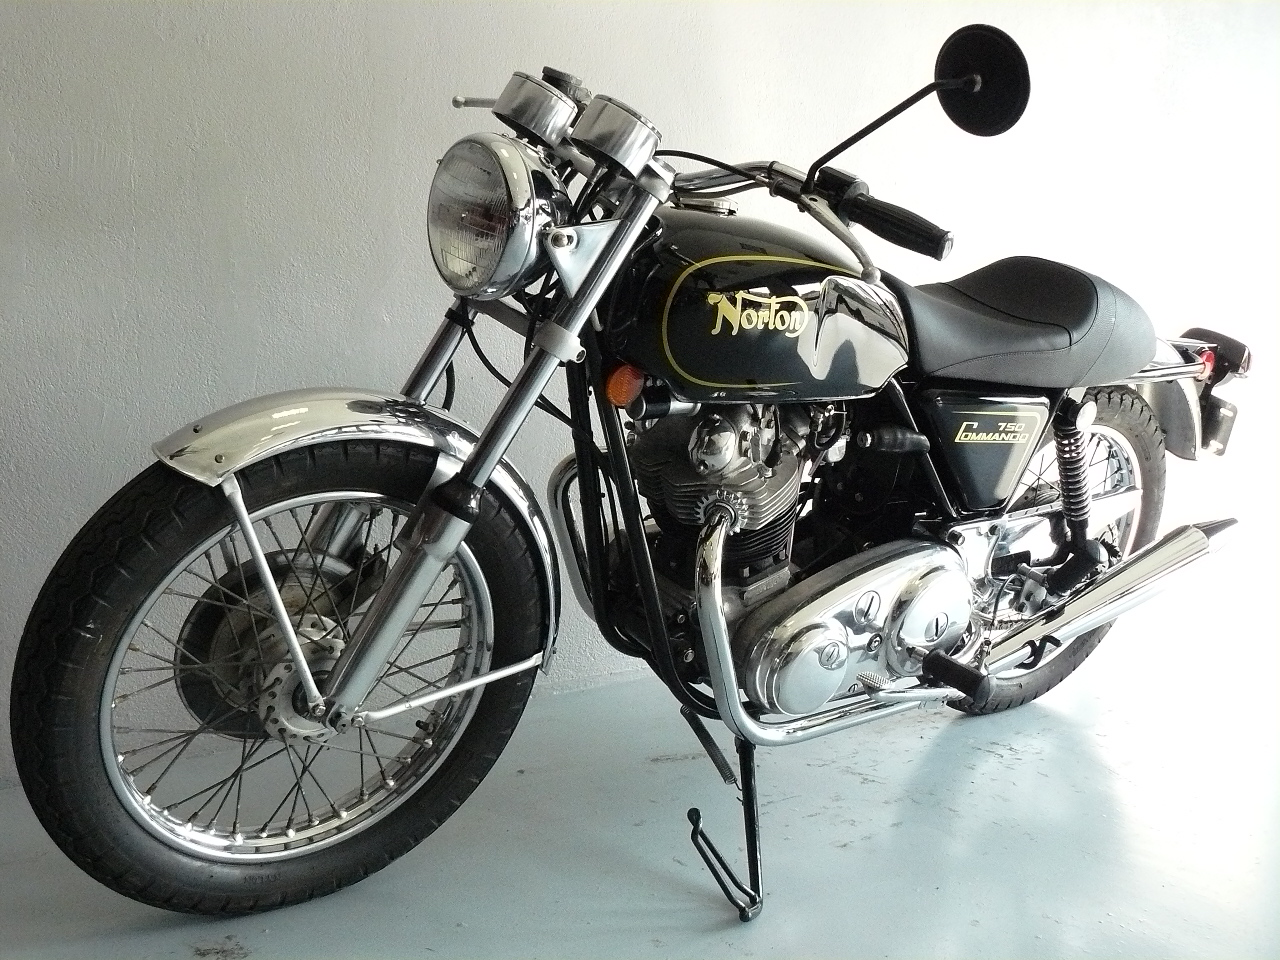 norton 750 commando de 1972 d 39 occasion motos anciennes de collection anglaise motos vendues. Black Bedroom Furniture Sets. Home Design Ideas